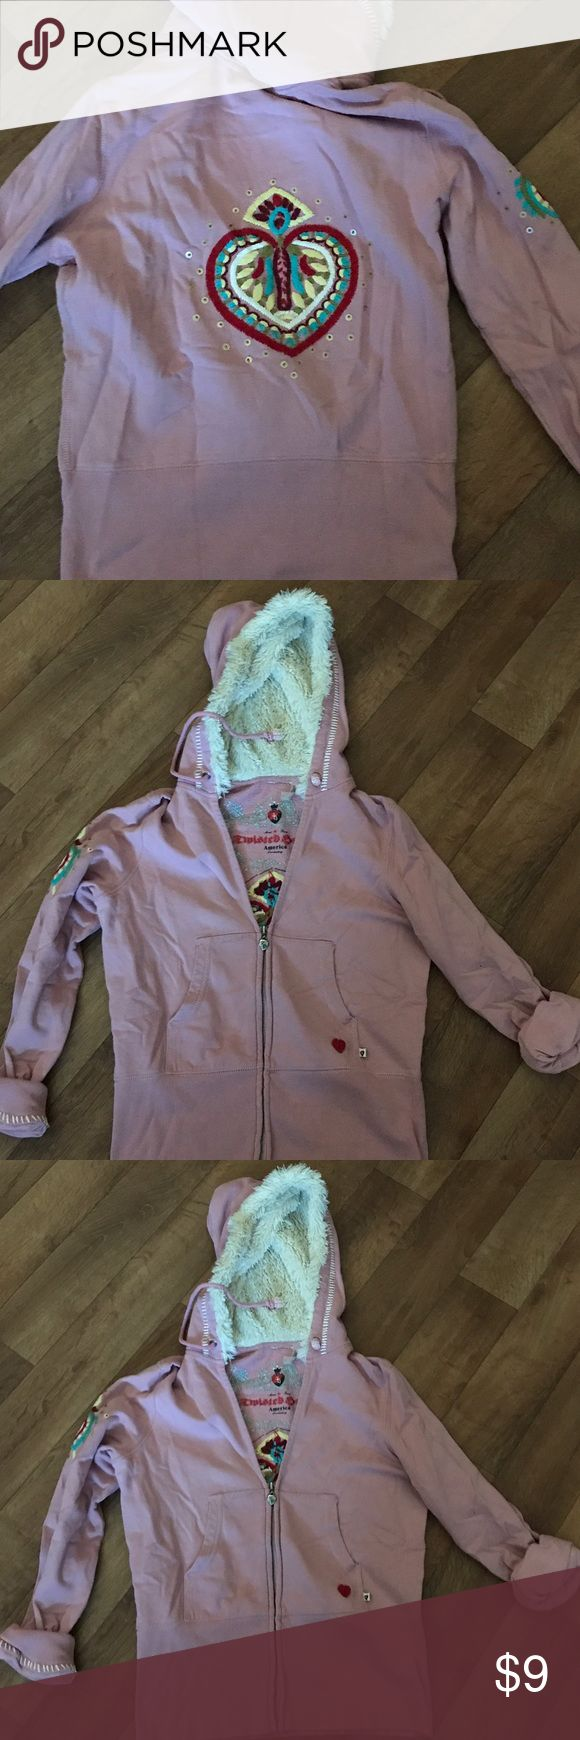 Twisted Heart Fur Lined Hoody Large Pink Fur Lined Hoody size large Tops